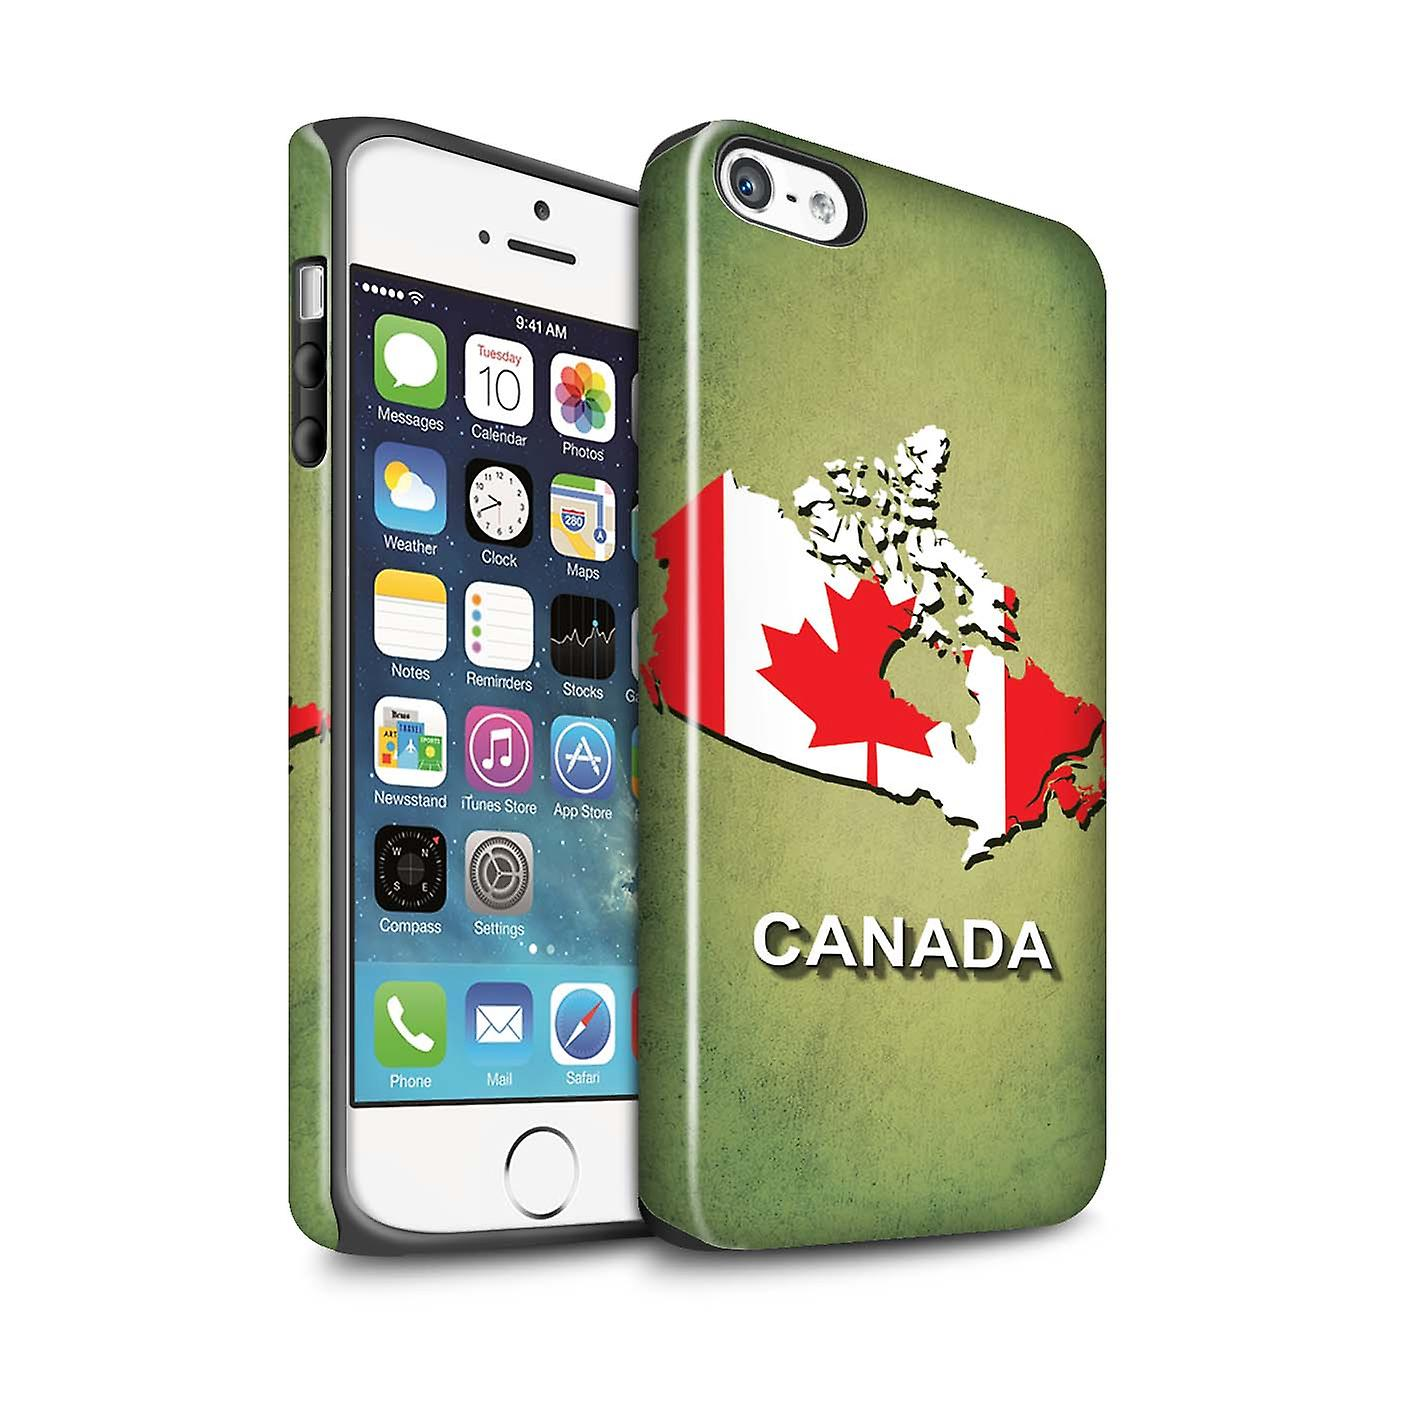 c7b698473f6 STUFF4 Gloss Tough Case for Apple iPhone 5 5S Canada Canadian Flag ...